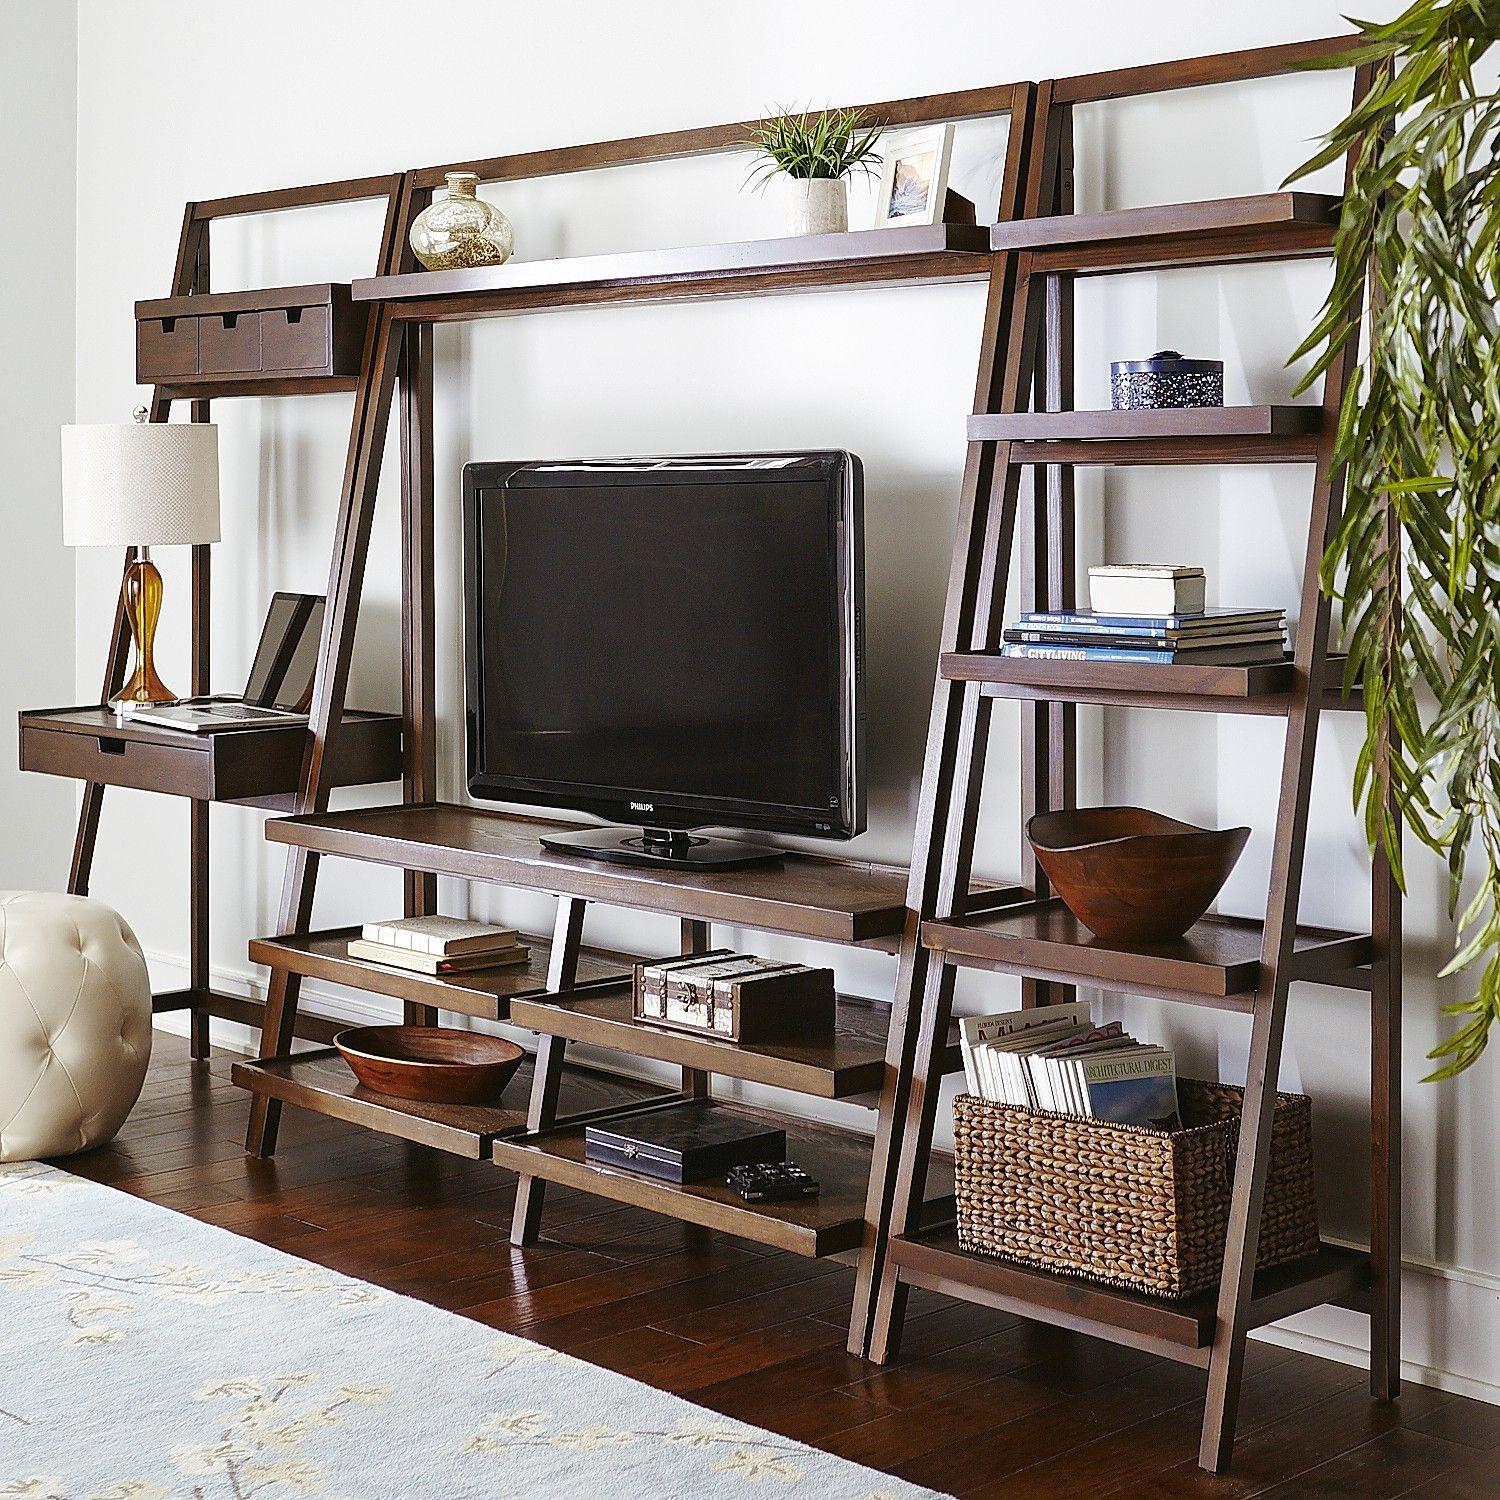 pier 1 tv stand. Morgan TV Stand - Tuscan Brown | Pier 1 Imports Area Tv